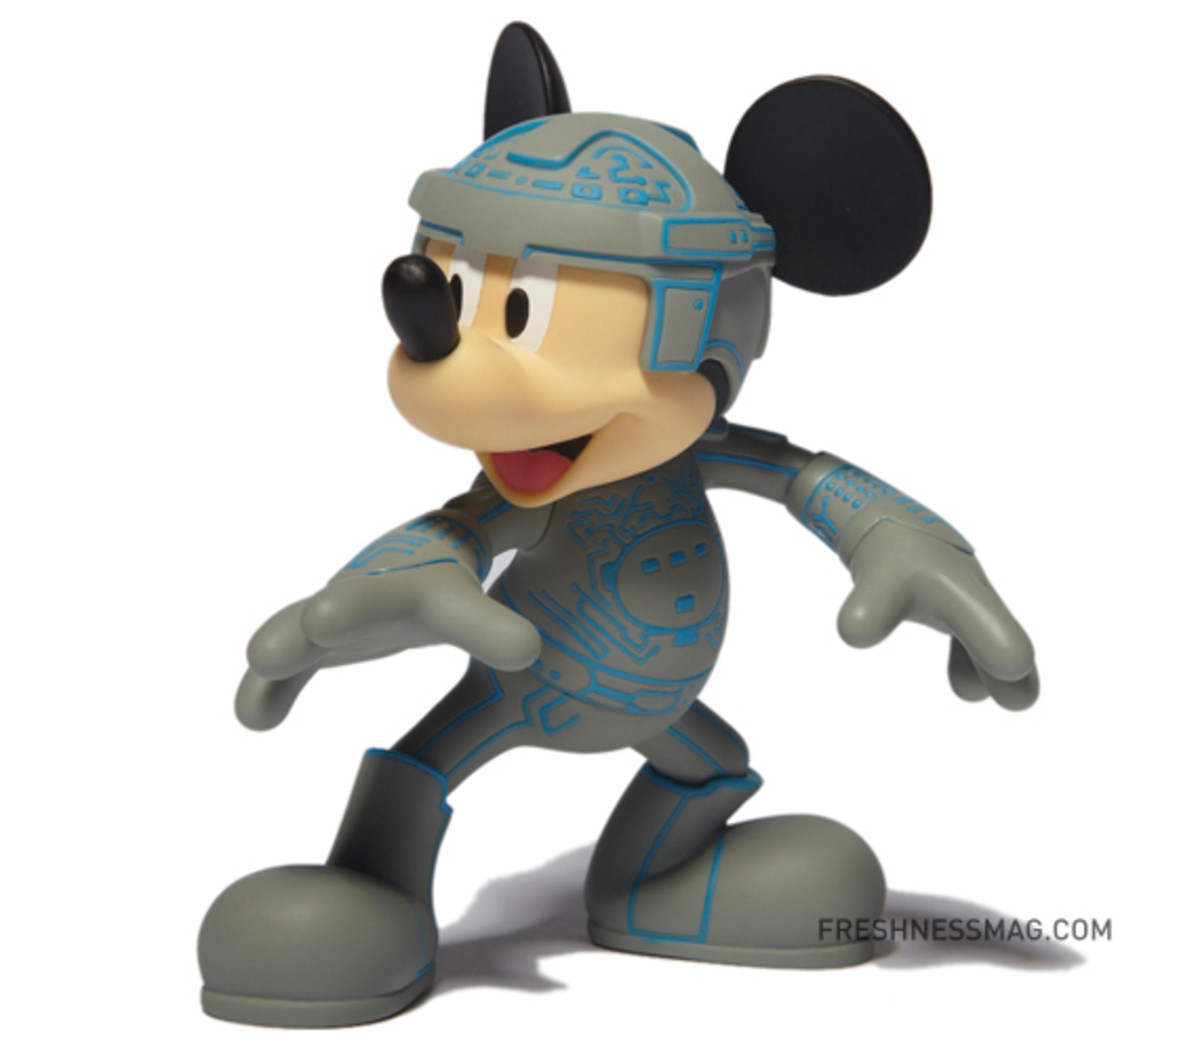 disney-medicom-toy-tron-mickey-mouse-vcd-01